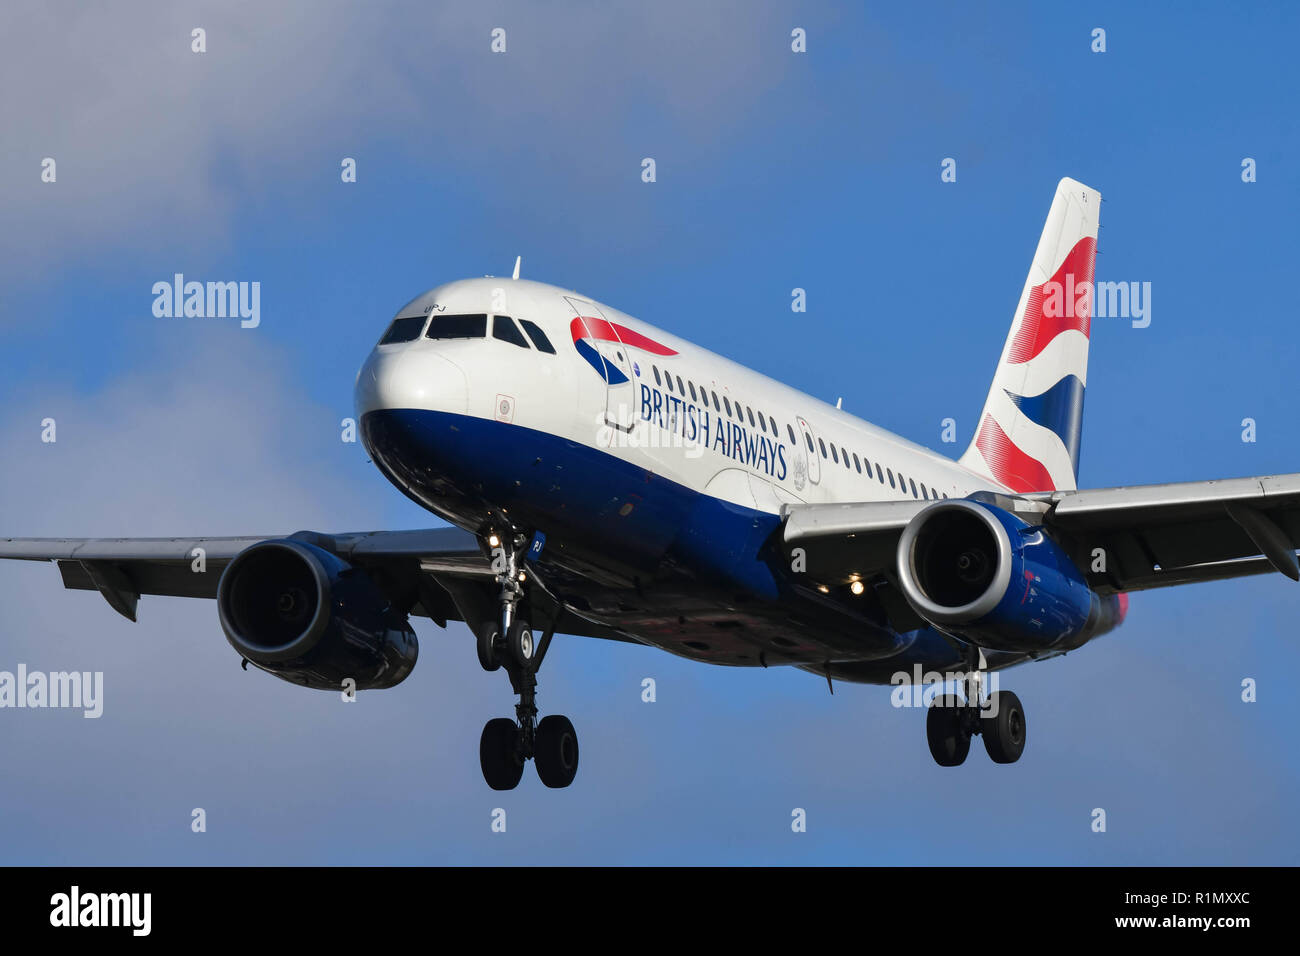 LONDON, ENGLAND - NOVEMBER 2018: British Airways Airbus A319 jet on final approach for landing at London Heathrow Airport. - Stock Image